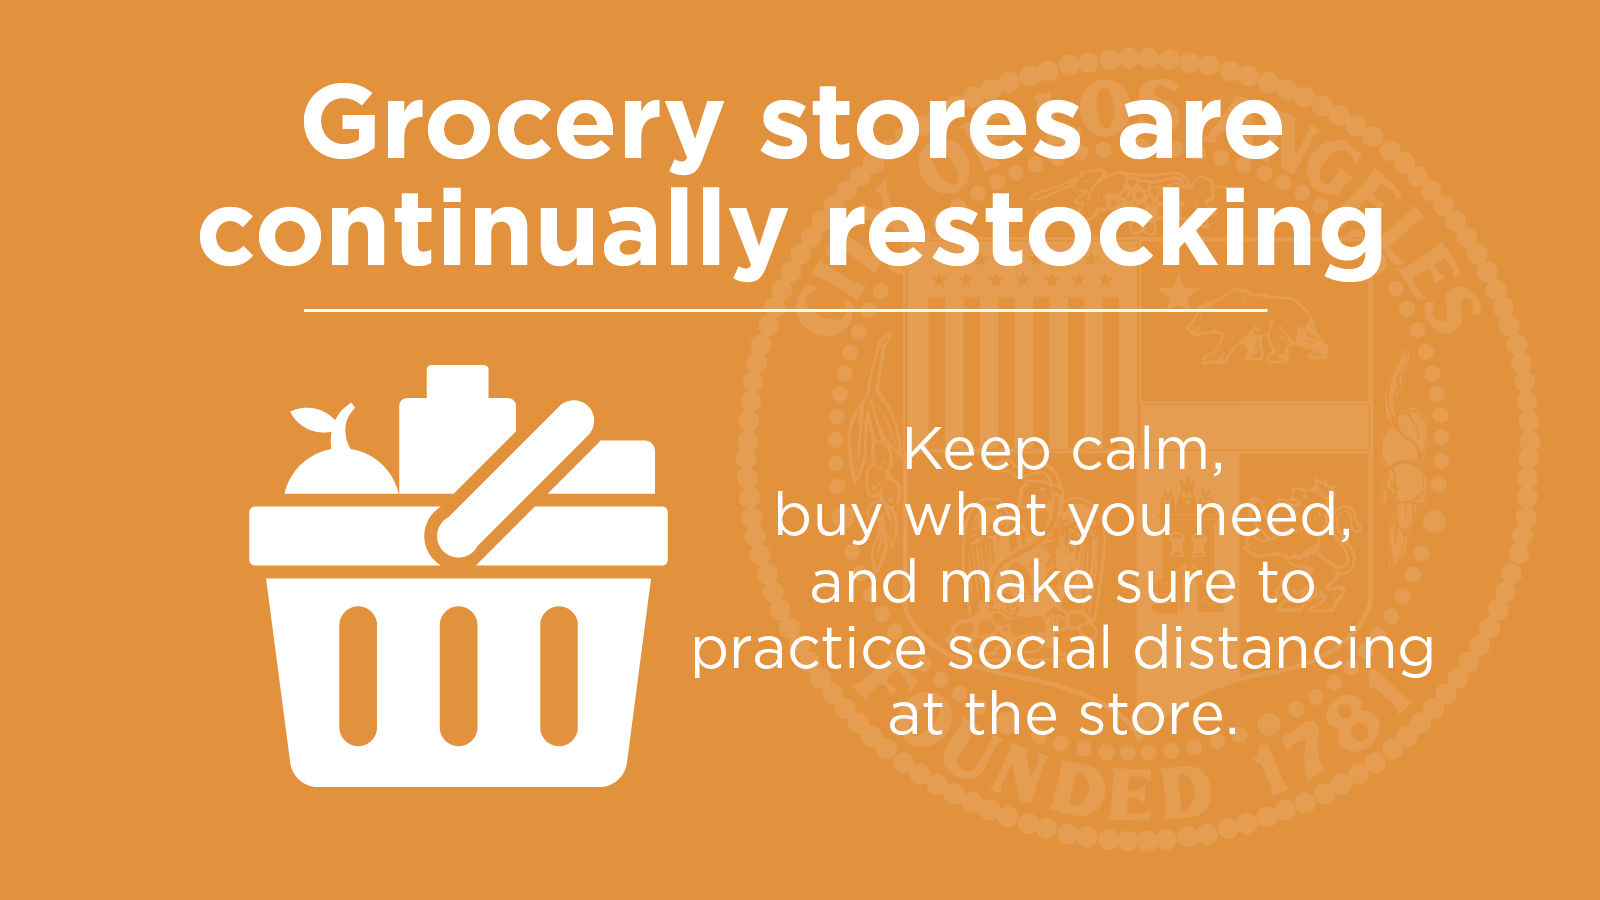 Grocery Stores are restocking. Do not panic buy.